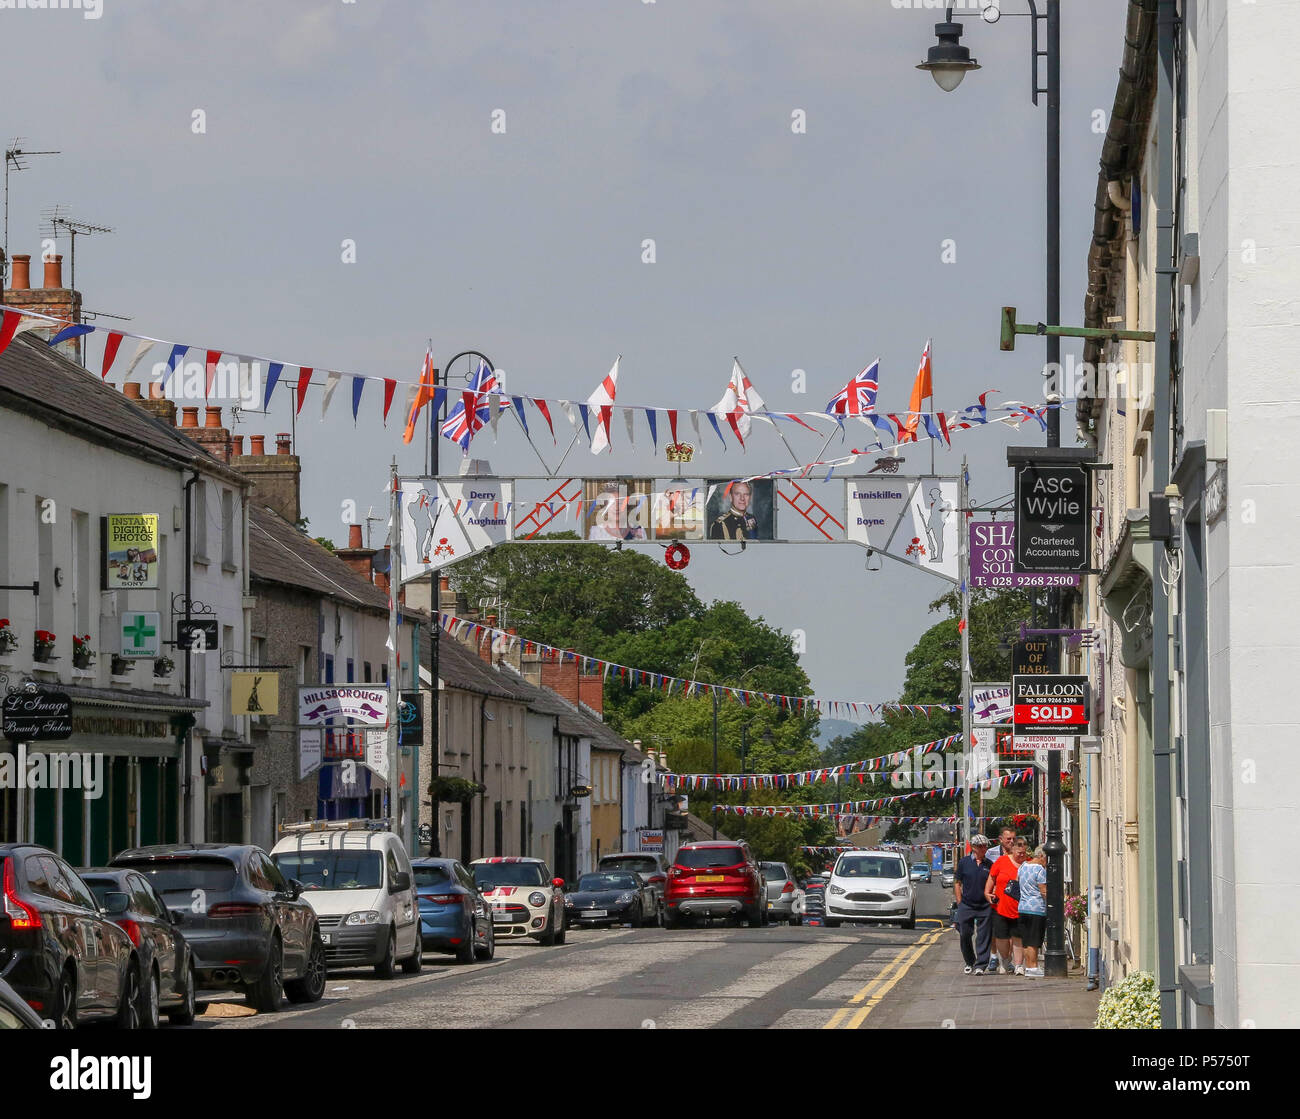 Hillsborough, County Down, Northern Ireland. 25 June 2018. UK weather - another hot and sunny day as high pressure sits over Northern Ireland and the UK. Hot sunny bright and colourful in Hillsborough County Down with the Oranage Arch and bunting now up ahead of the traditional marching season in Northern Ireland.Credit: David Hunter/Alamy Live News. - Stock Image